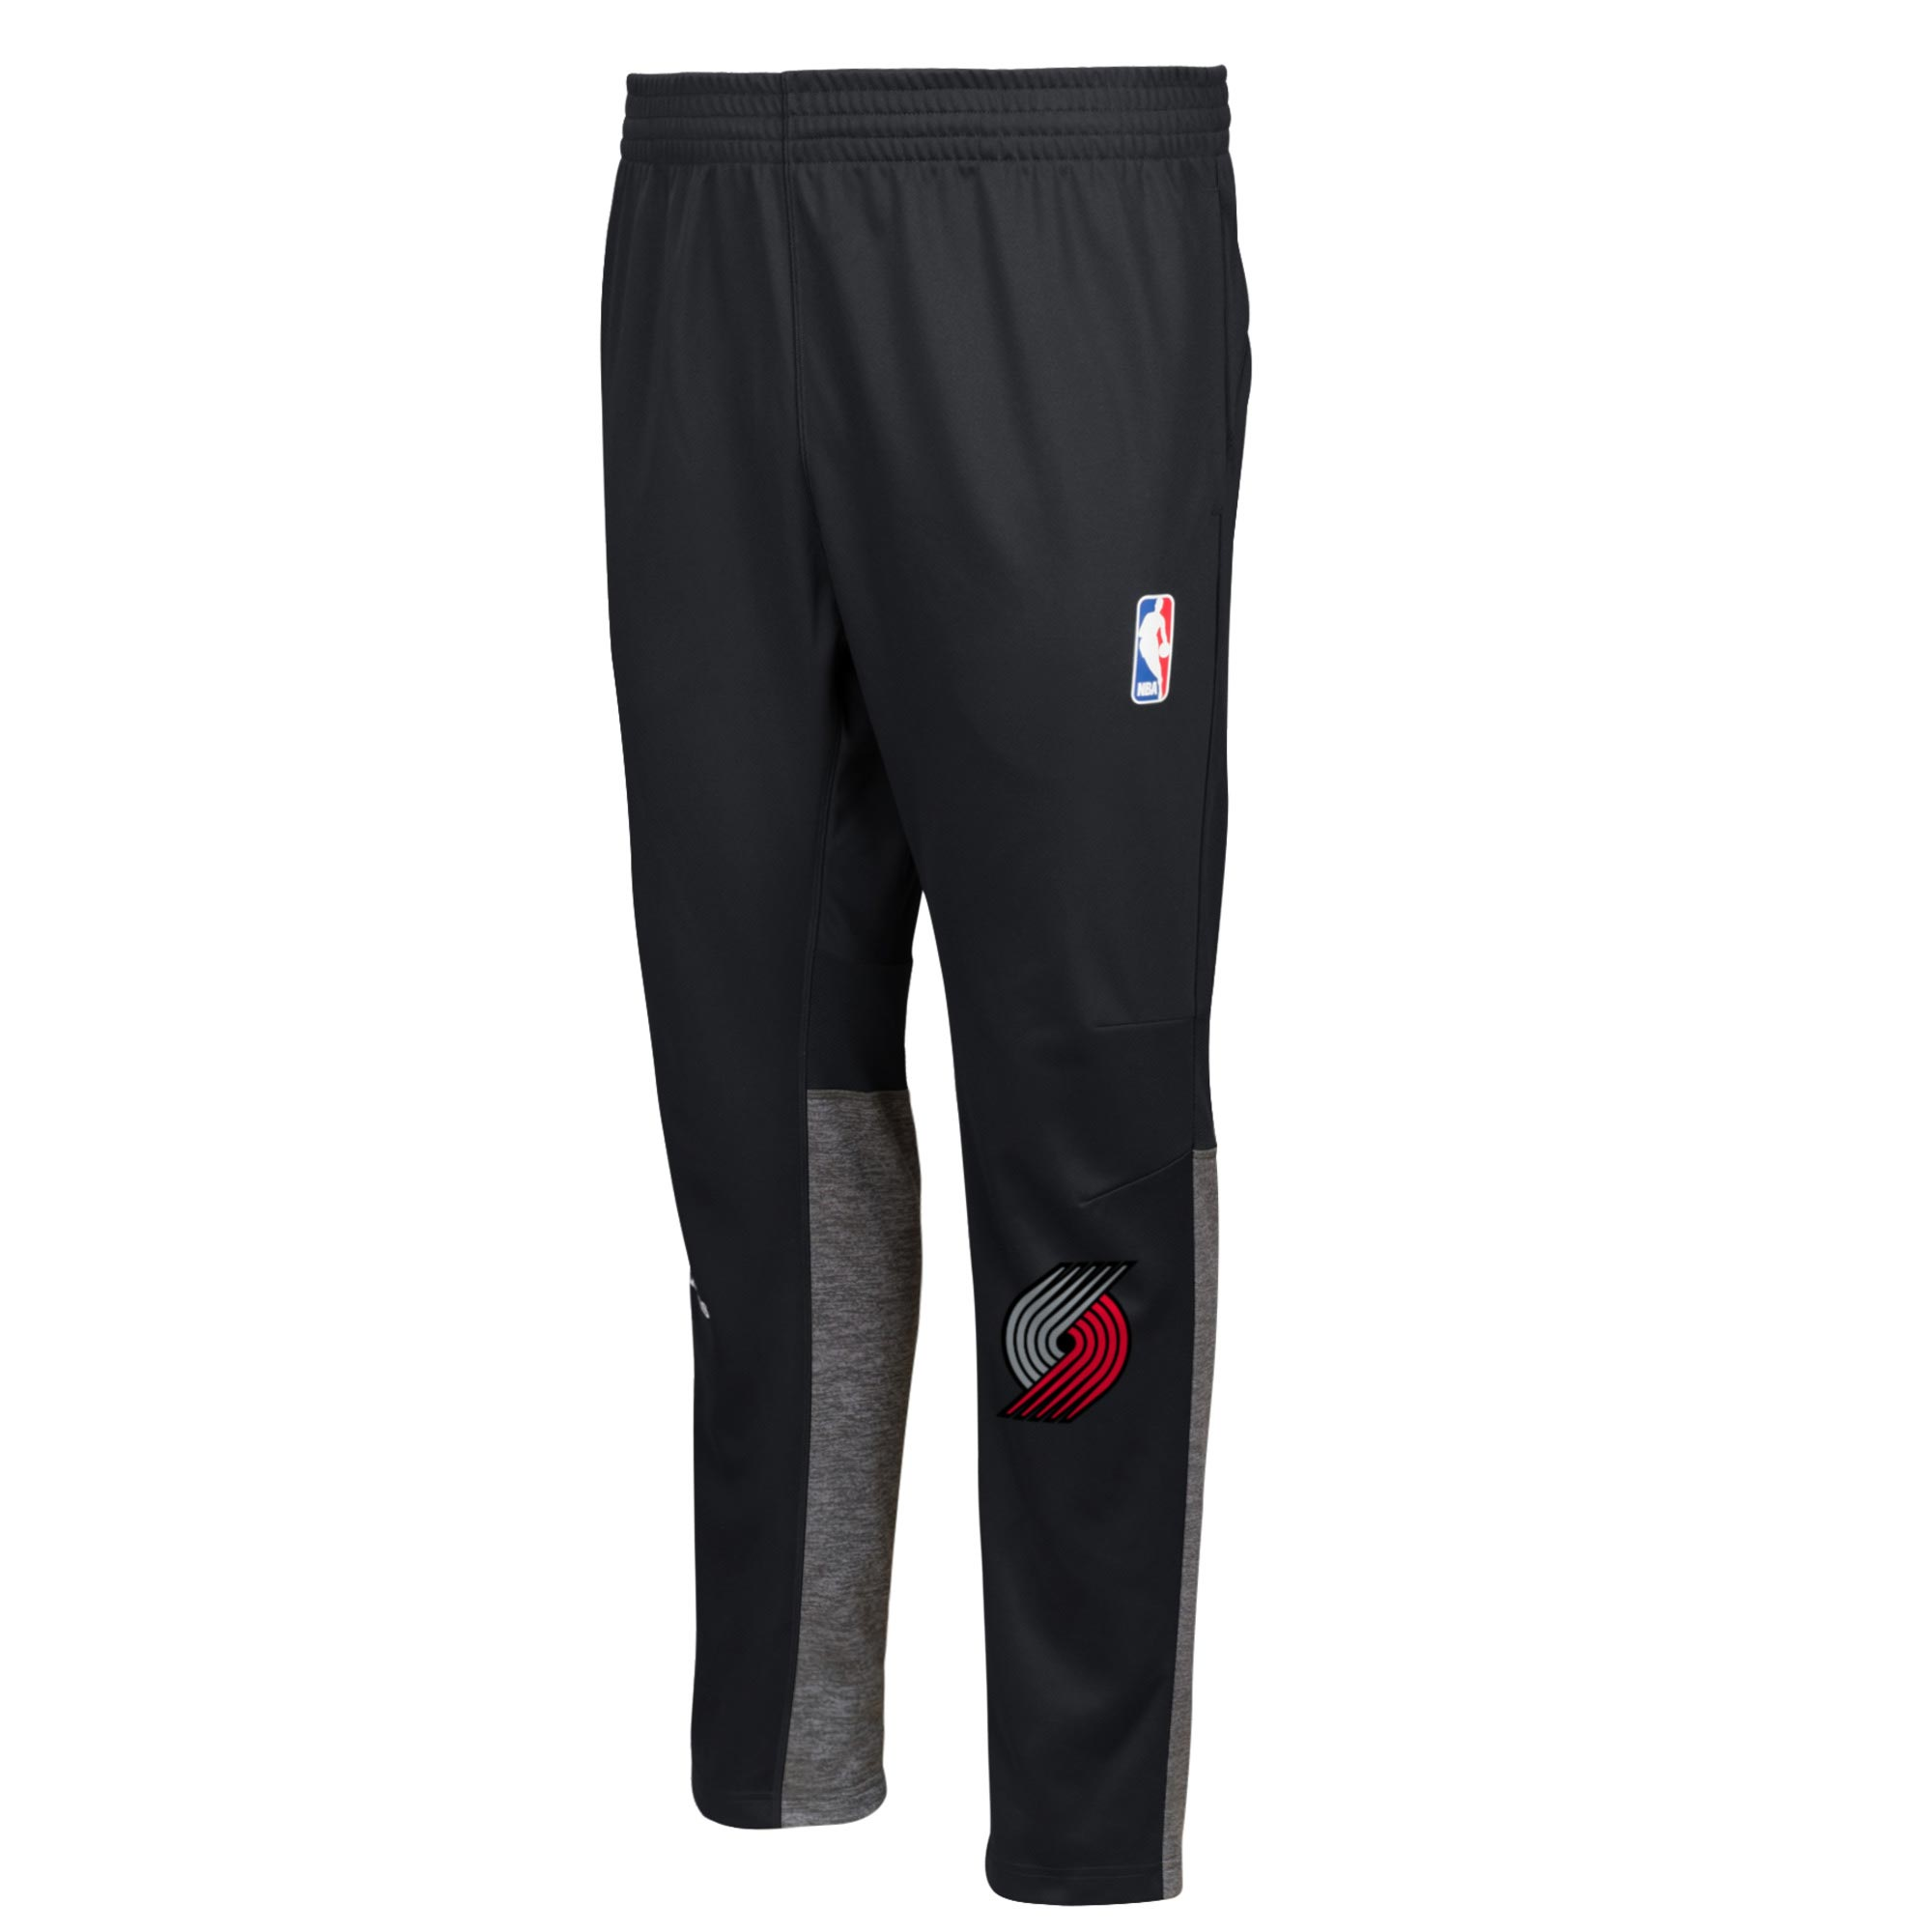 Image of Portland Trail Blazers On-Court Pant 2016-17